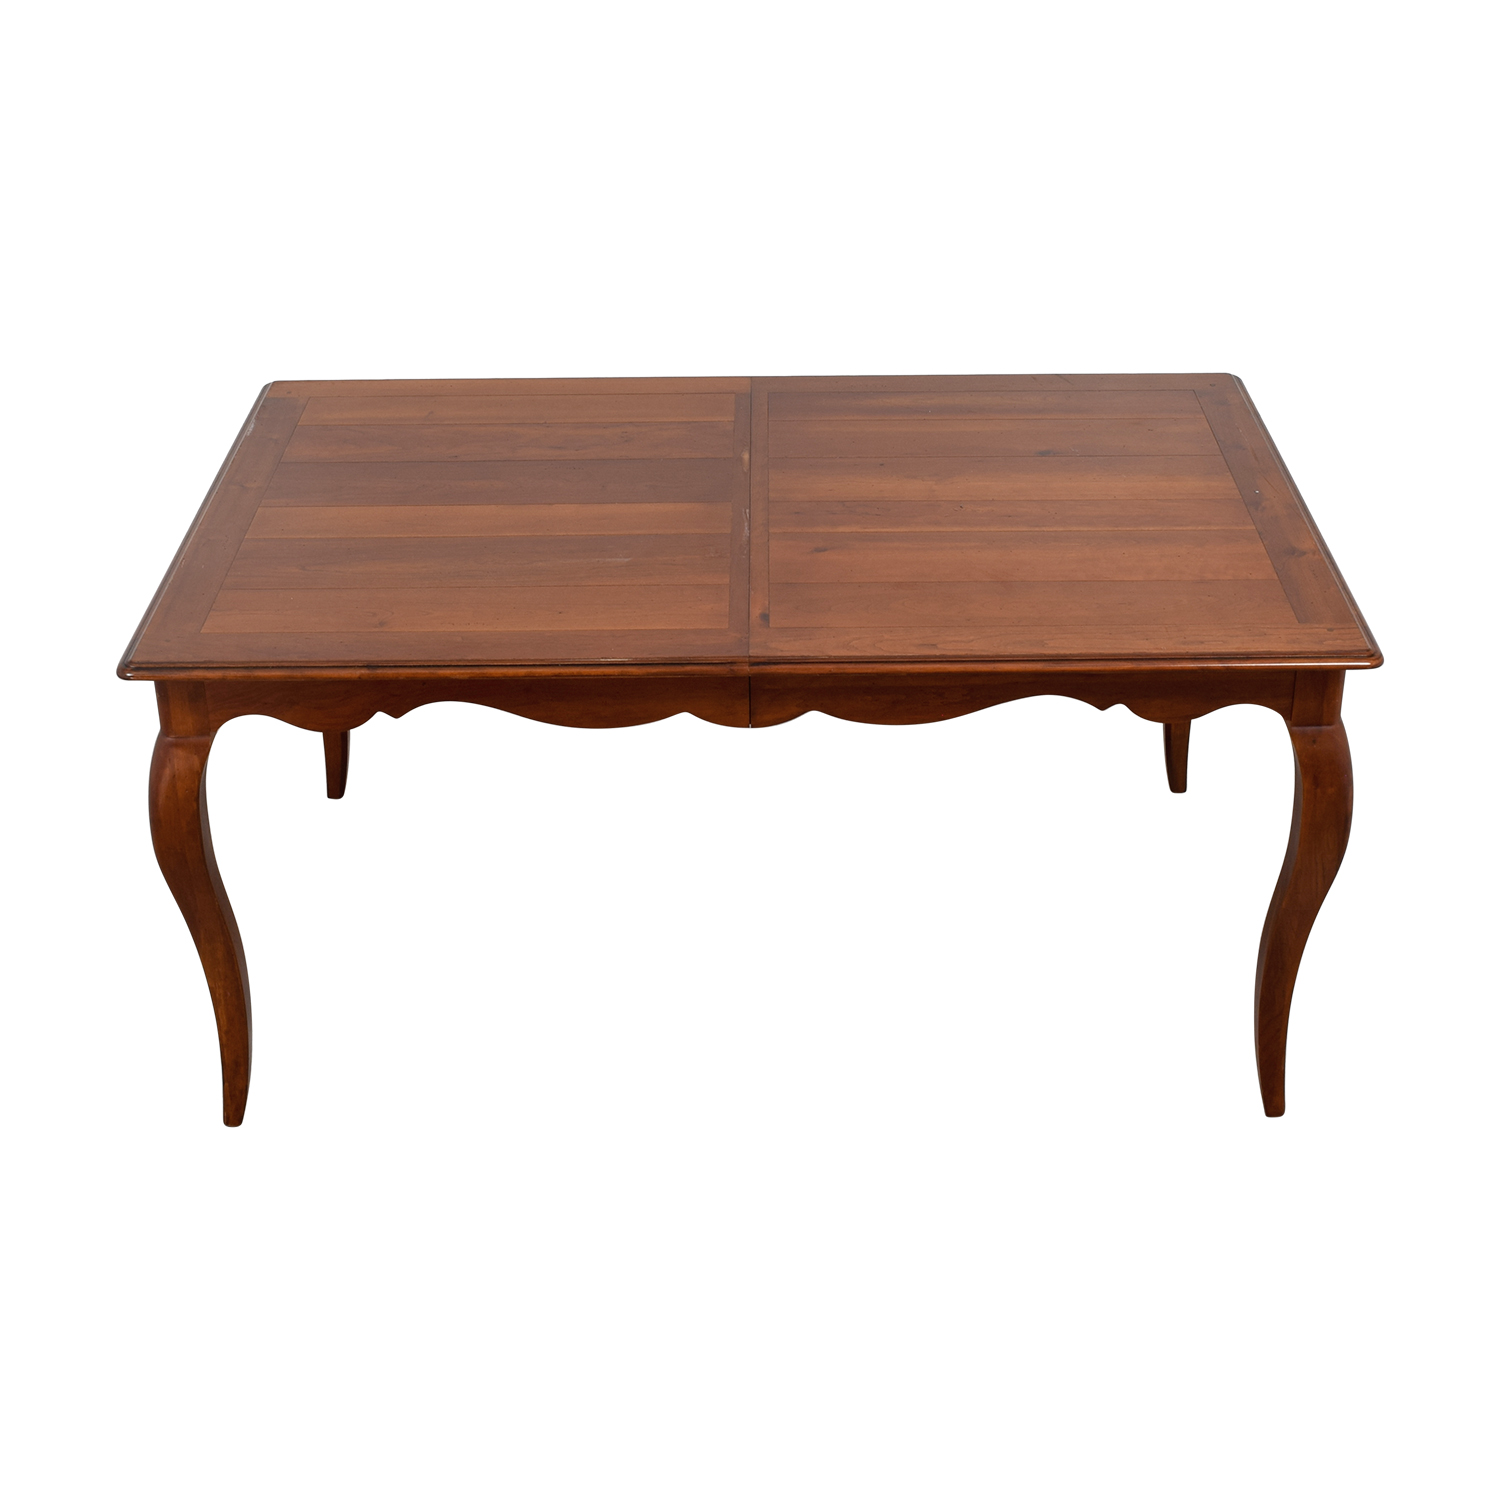 Ethan Allen Ethan Allen Juliette Wood Dovetailed Dining Table used